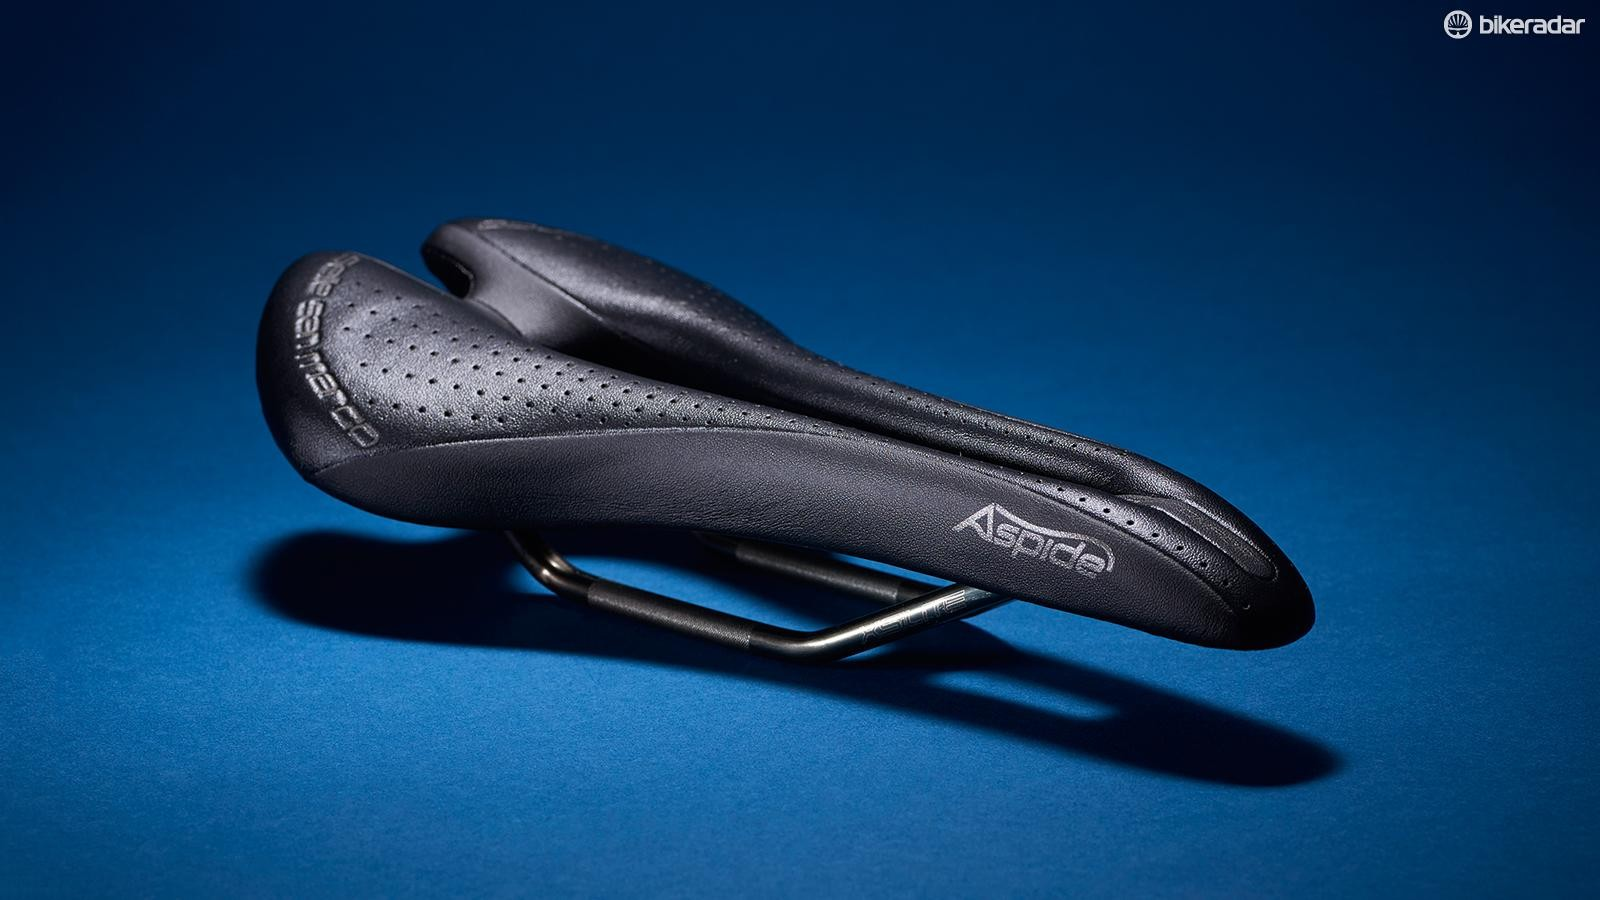 Selle's San Marco Aspide Supercomfort saddle